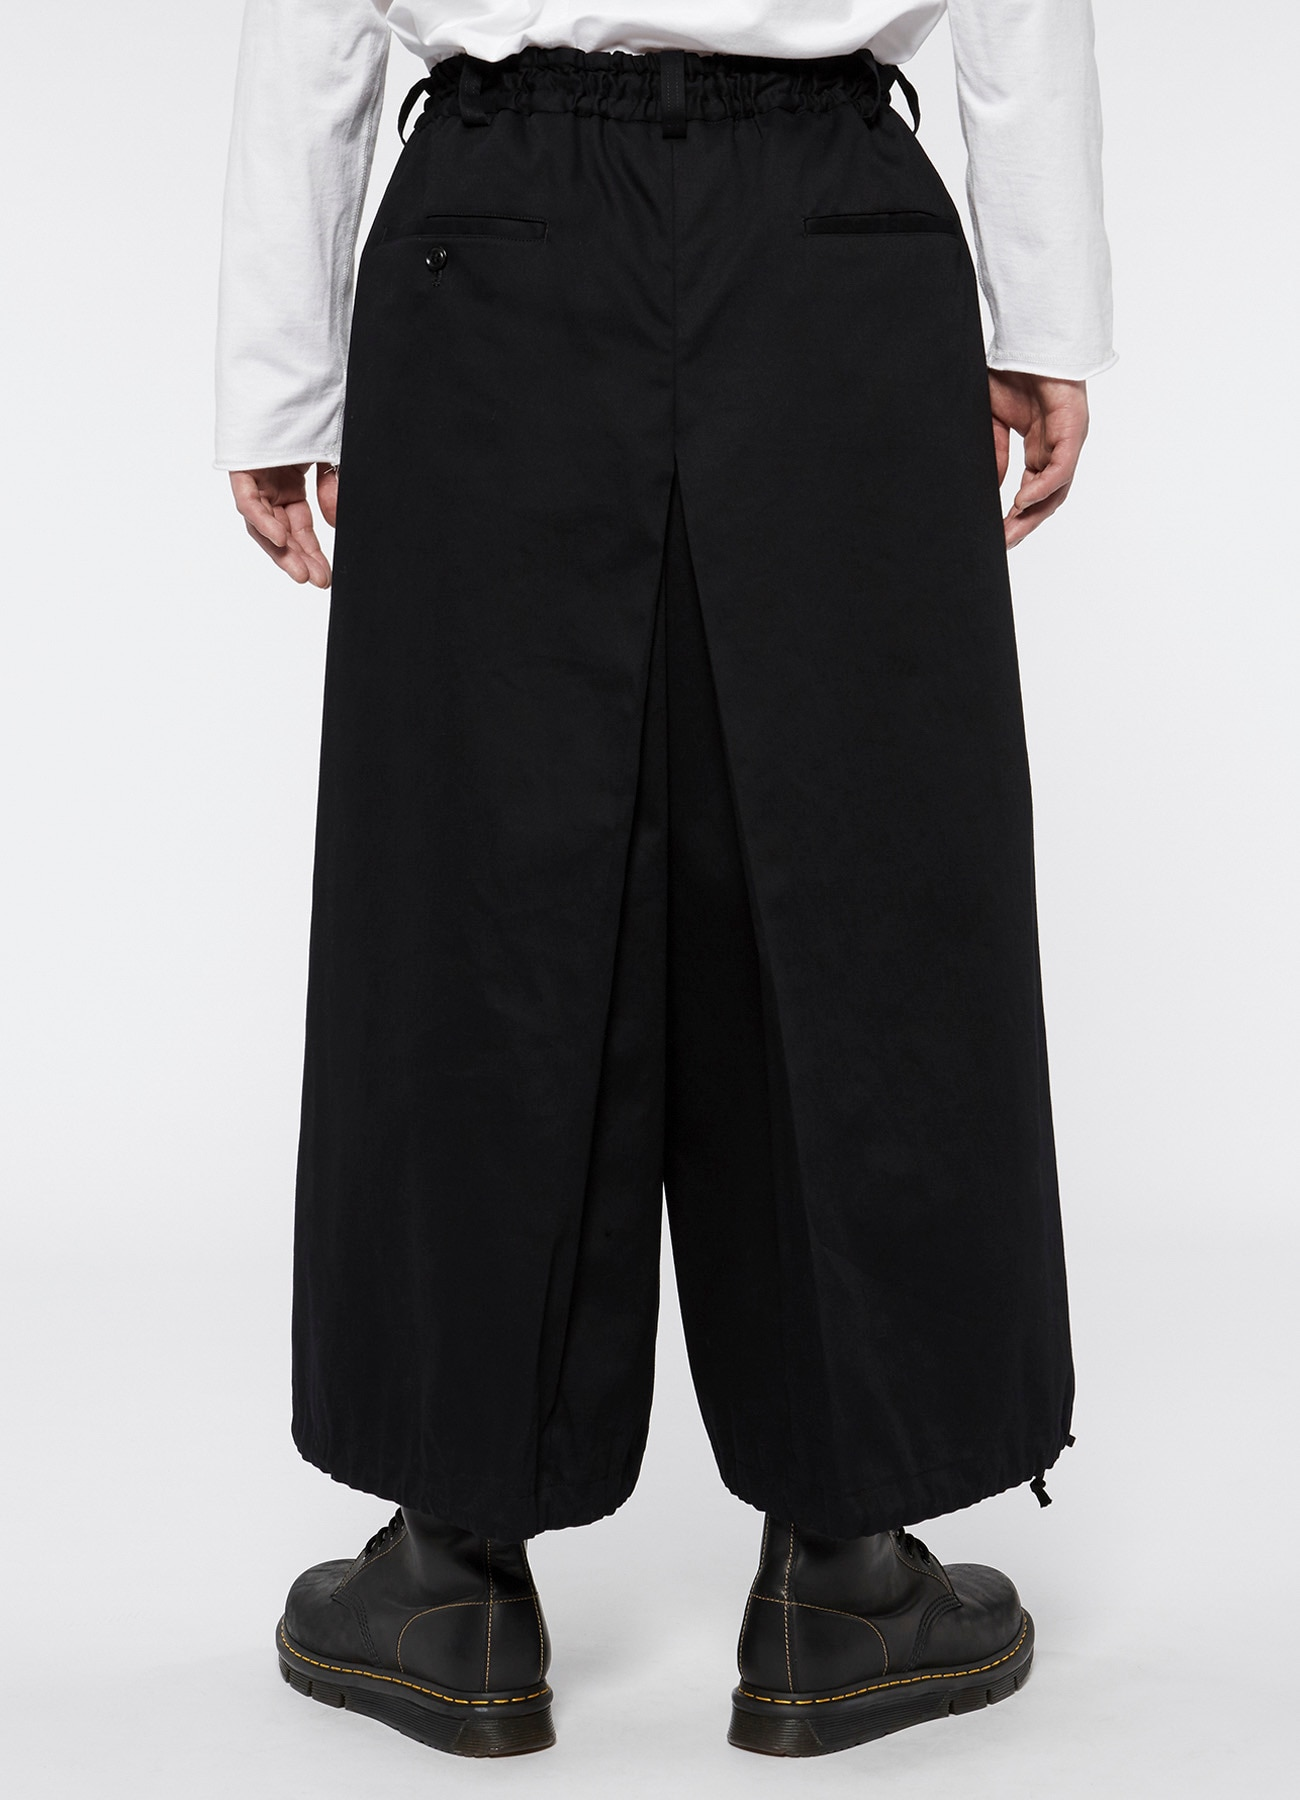 20 / Cotton Twill Hakama Balloon Pants